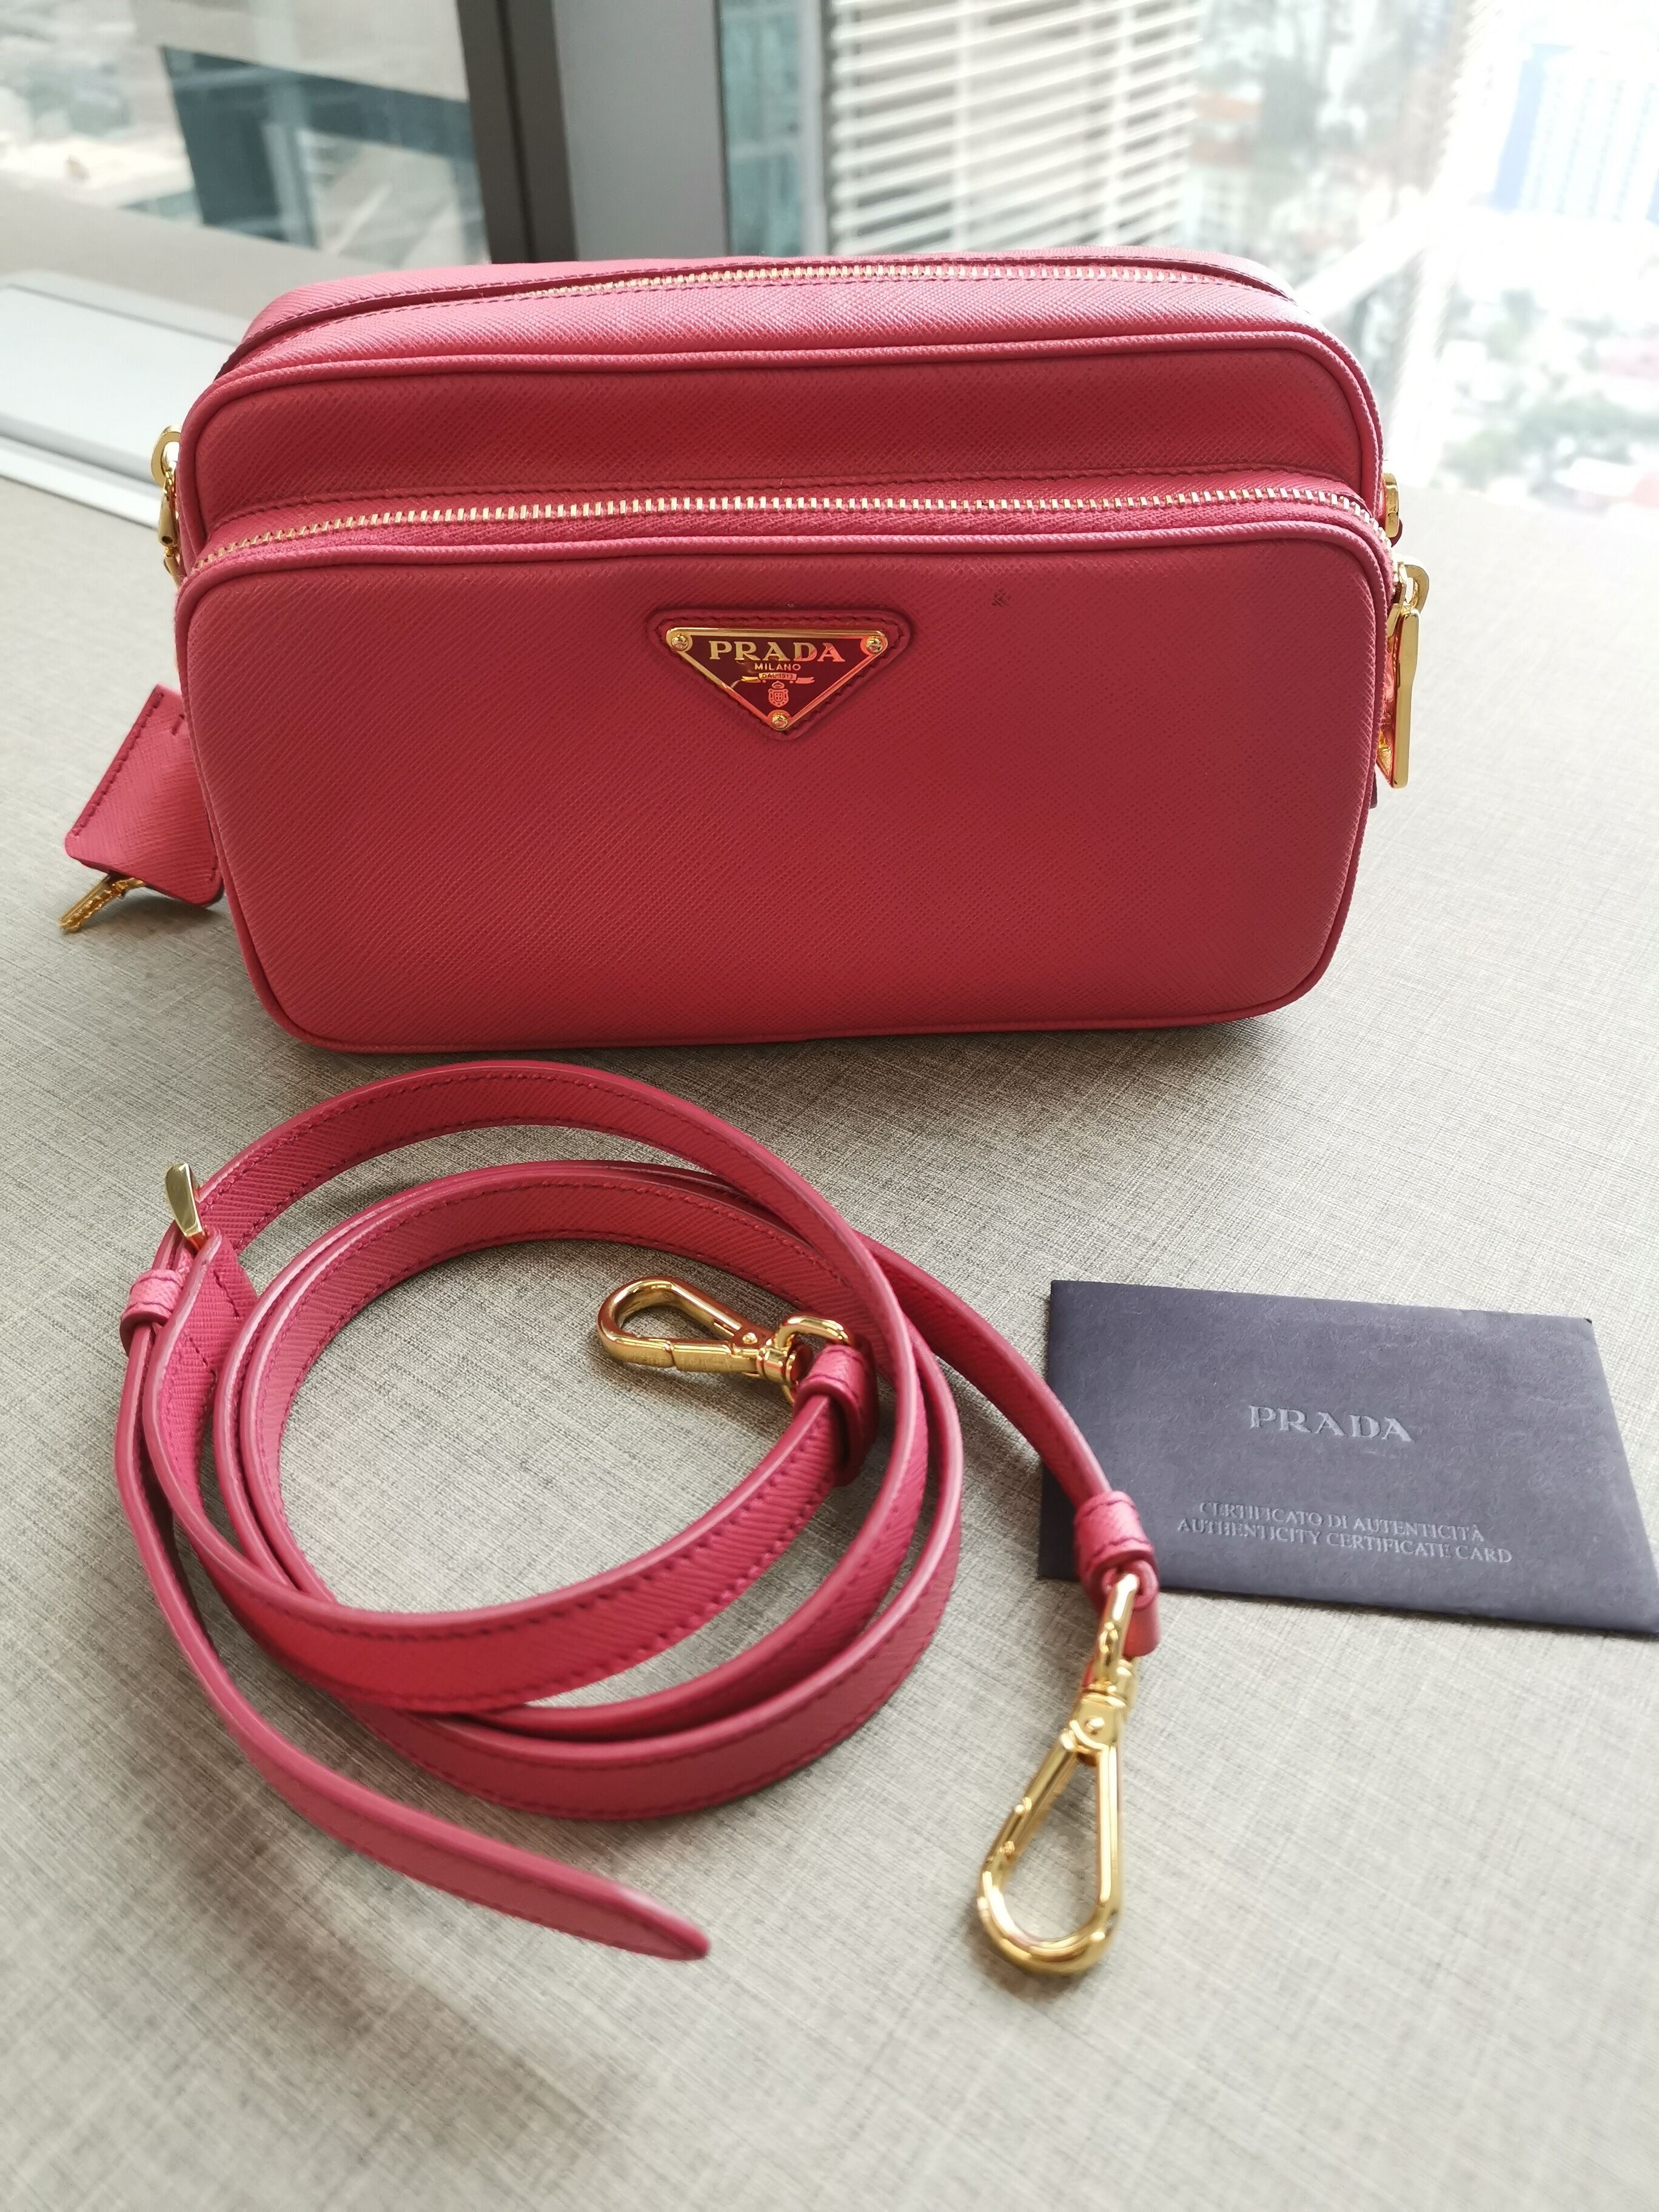 06d6dc2637d313 Prada safiano Double Zip Sling Bag Condition : 8.5/10 Color/Material :  Fushia come with dust bag only. Selling Price : SGD 935 / RM 2800 Contact  via ...